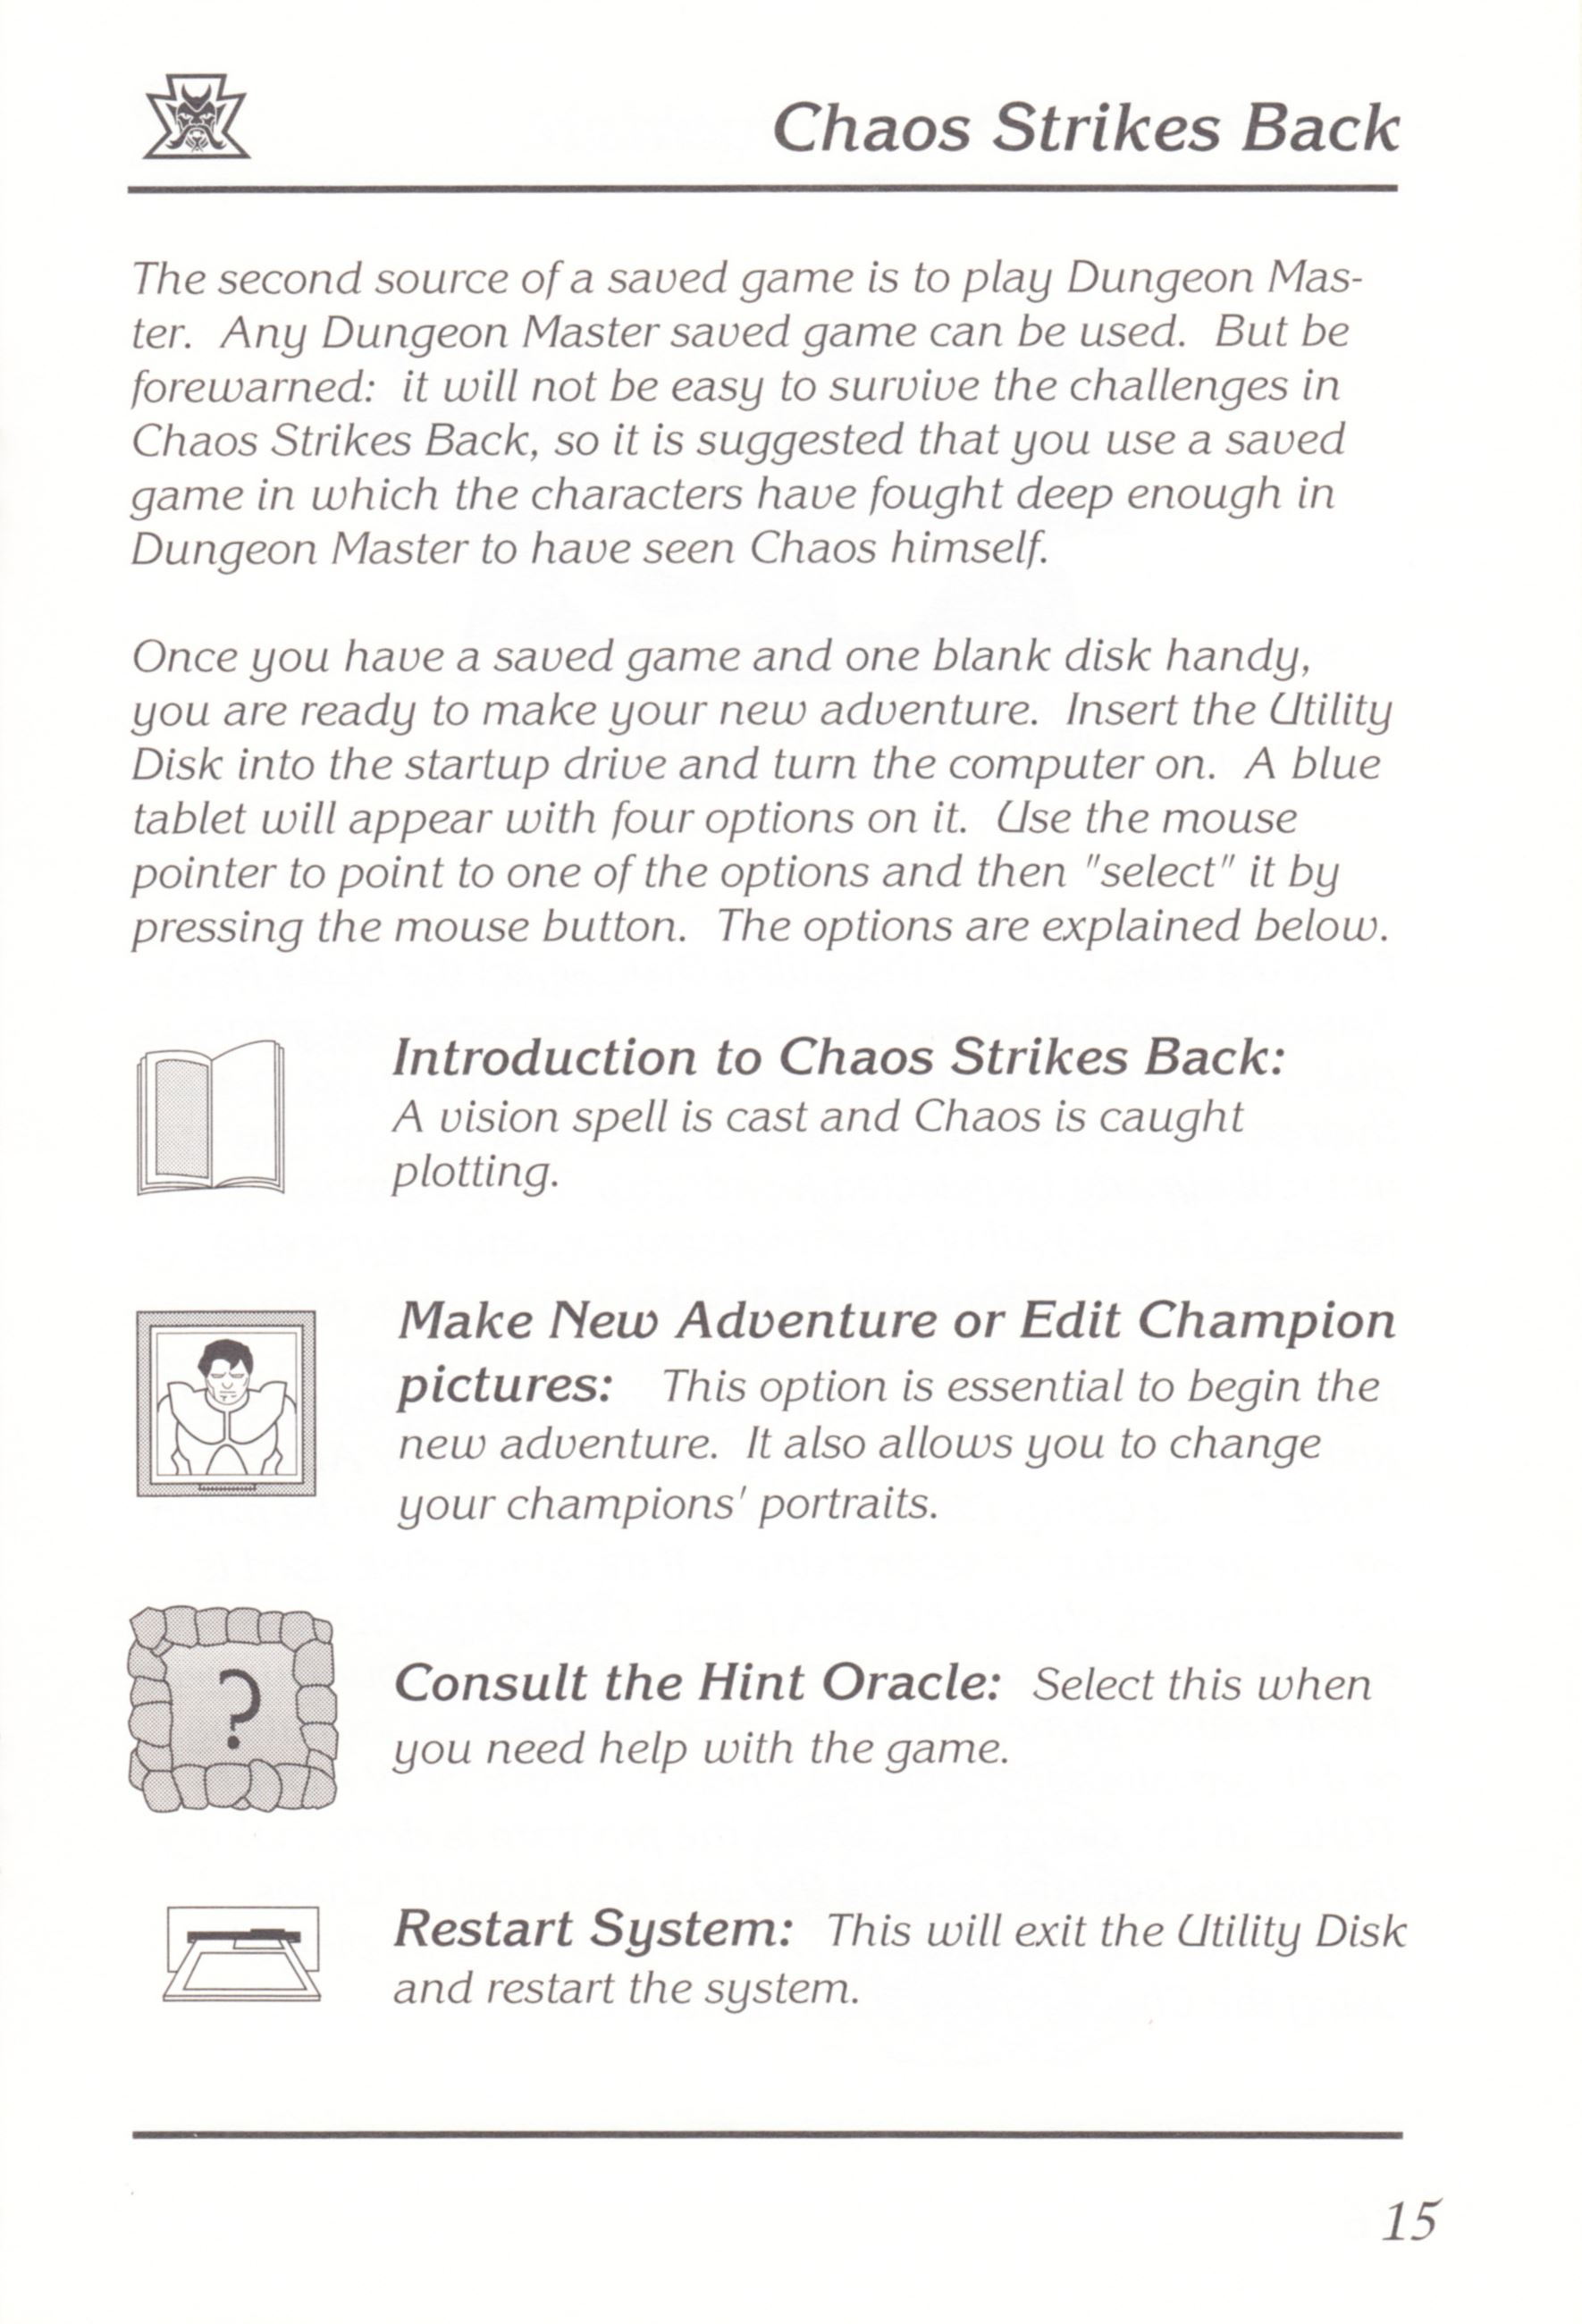 Game - Chaos Strikes Back - UK - Amiga - Manual - Page 017 - Scan